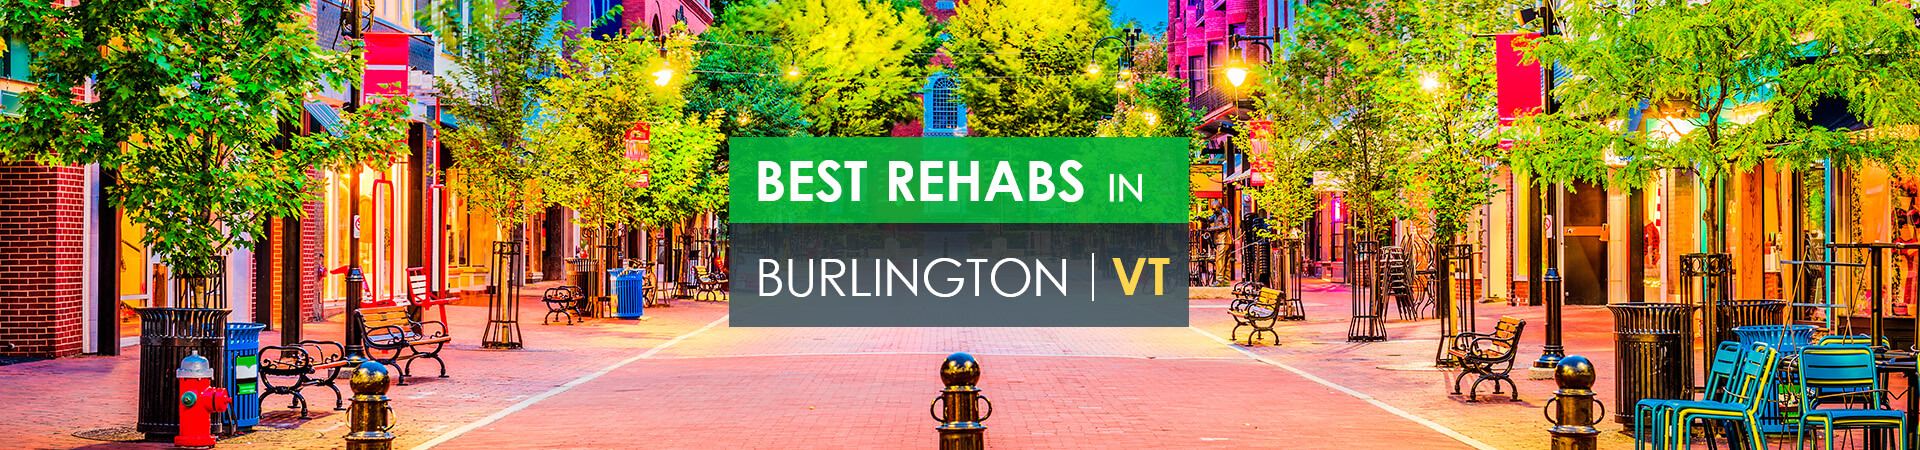 Best rehabs in Burlington, VT